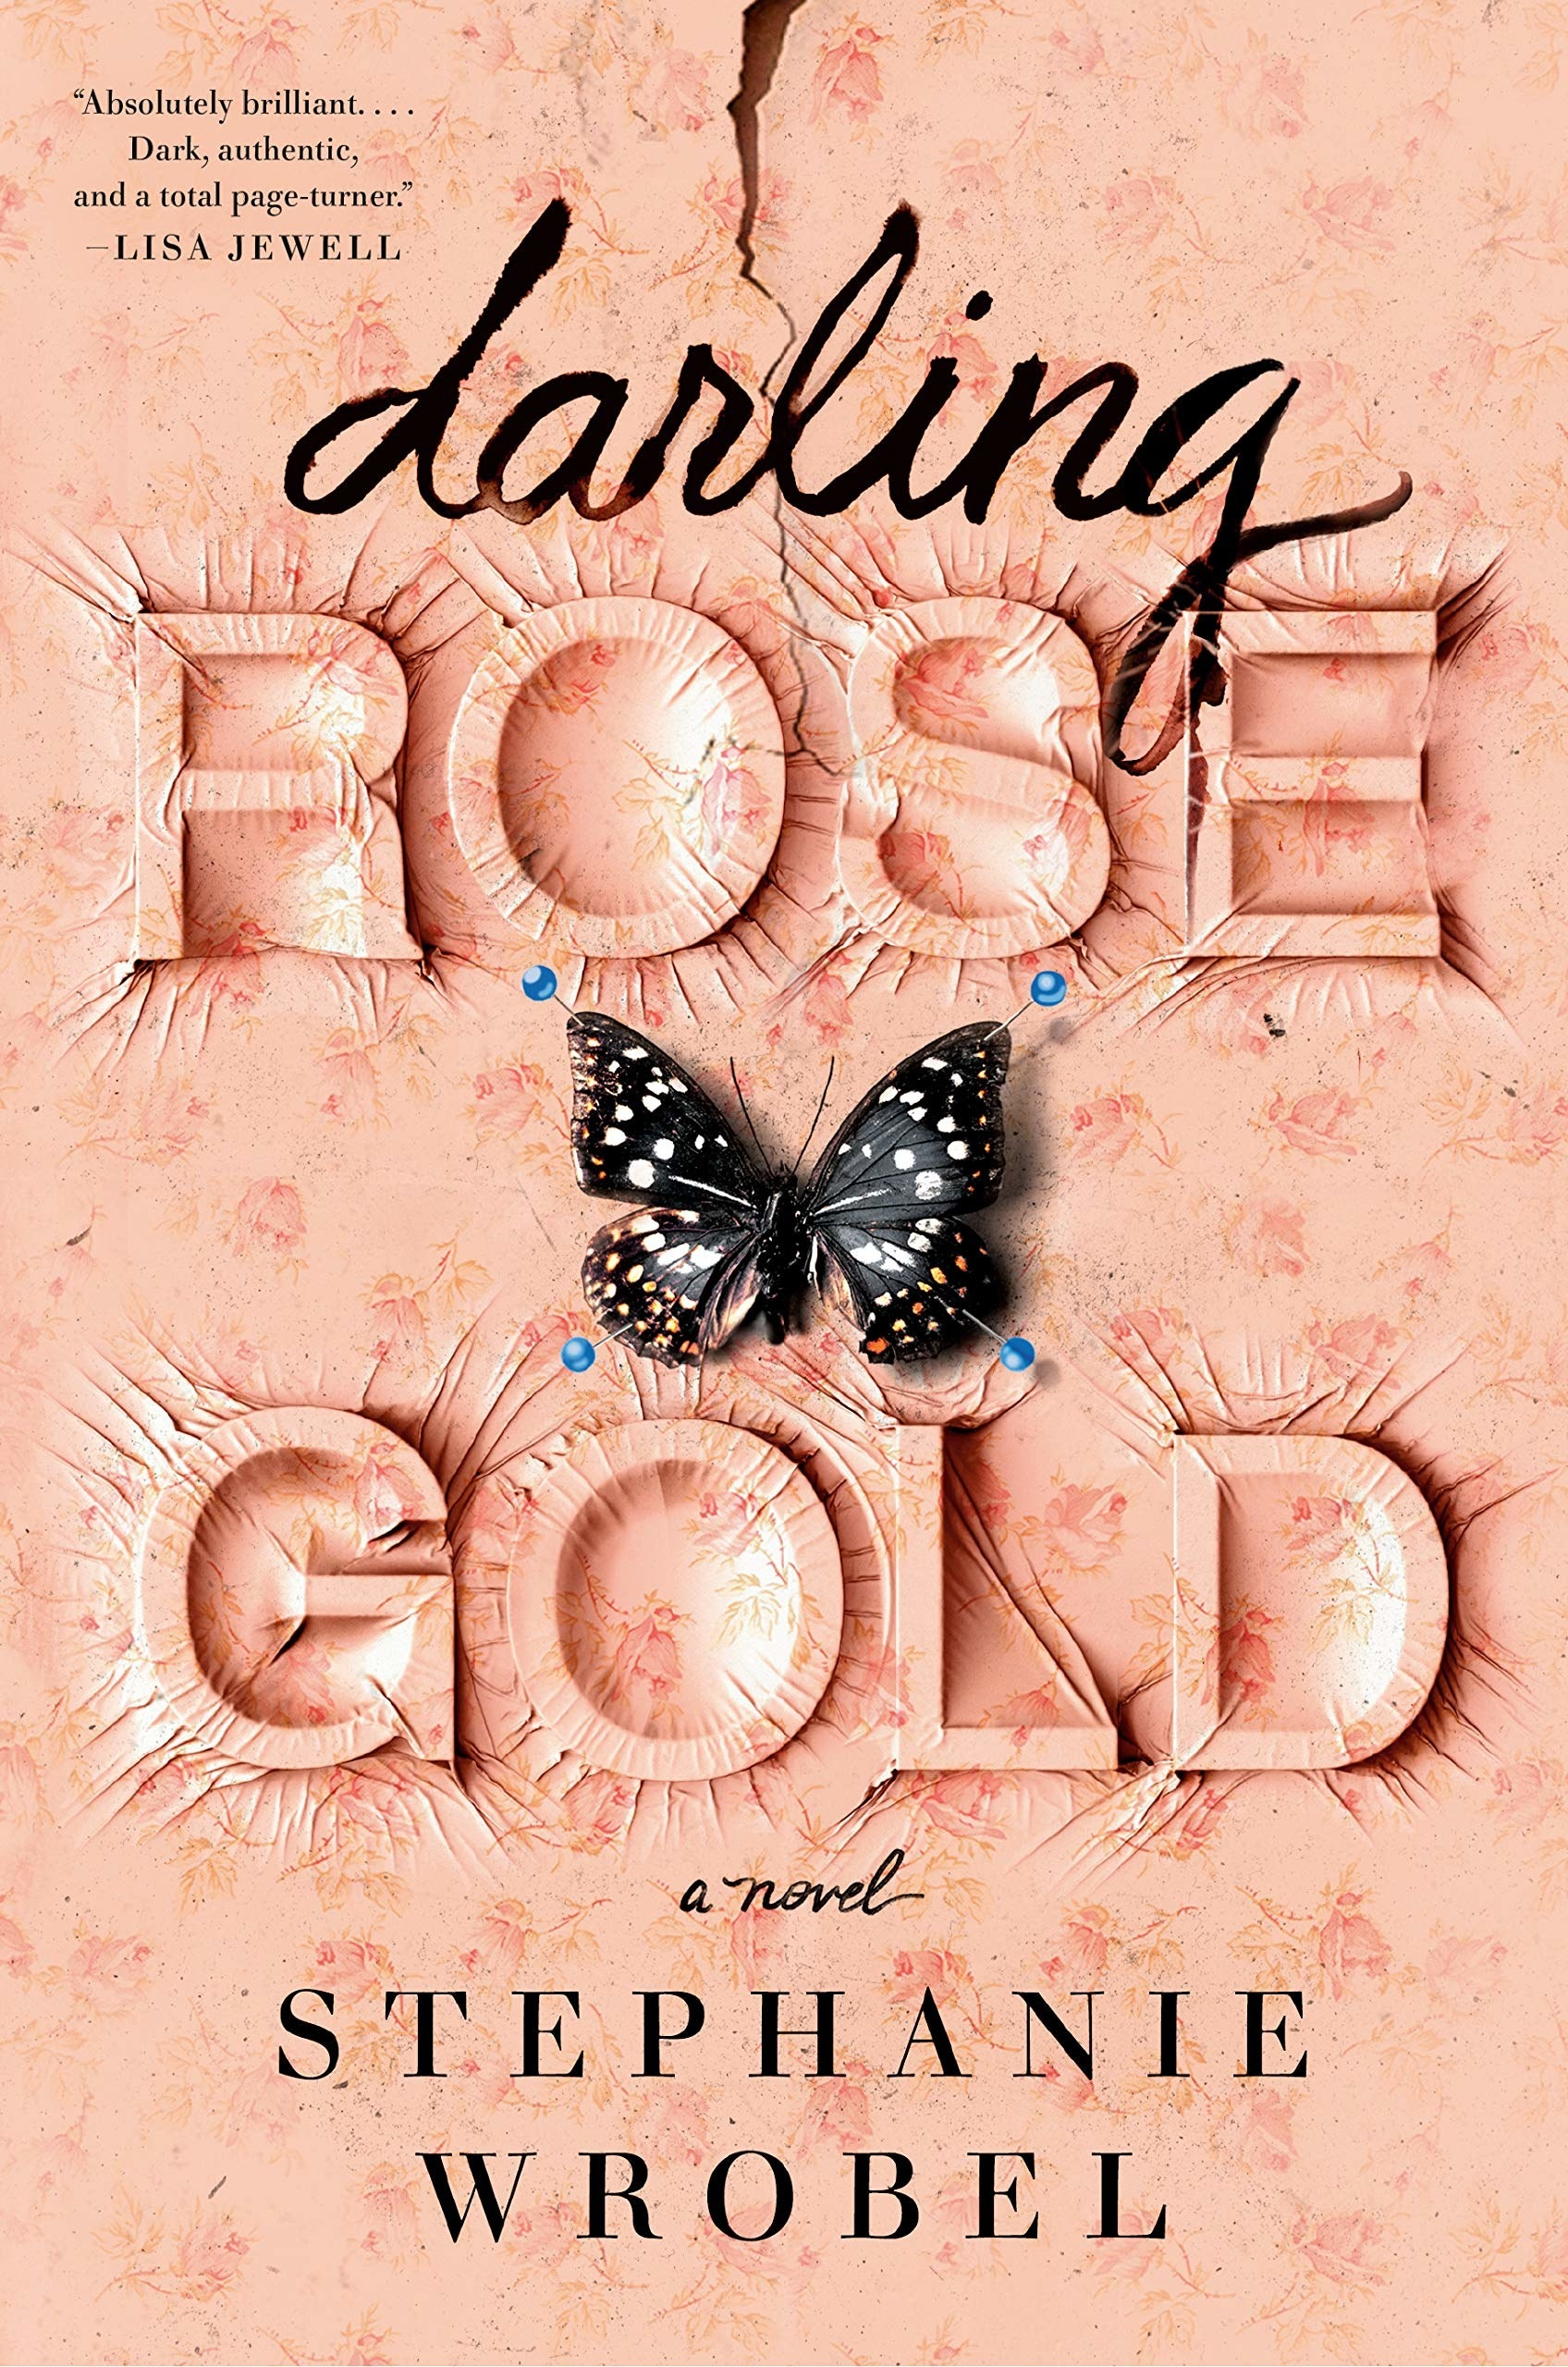 Book Cover with rose gold wallpaper illustration